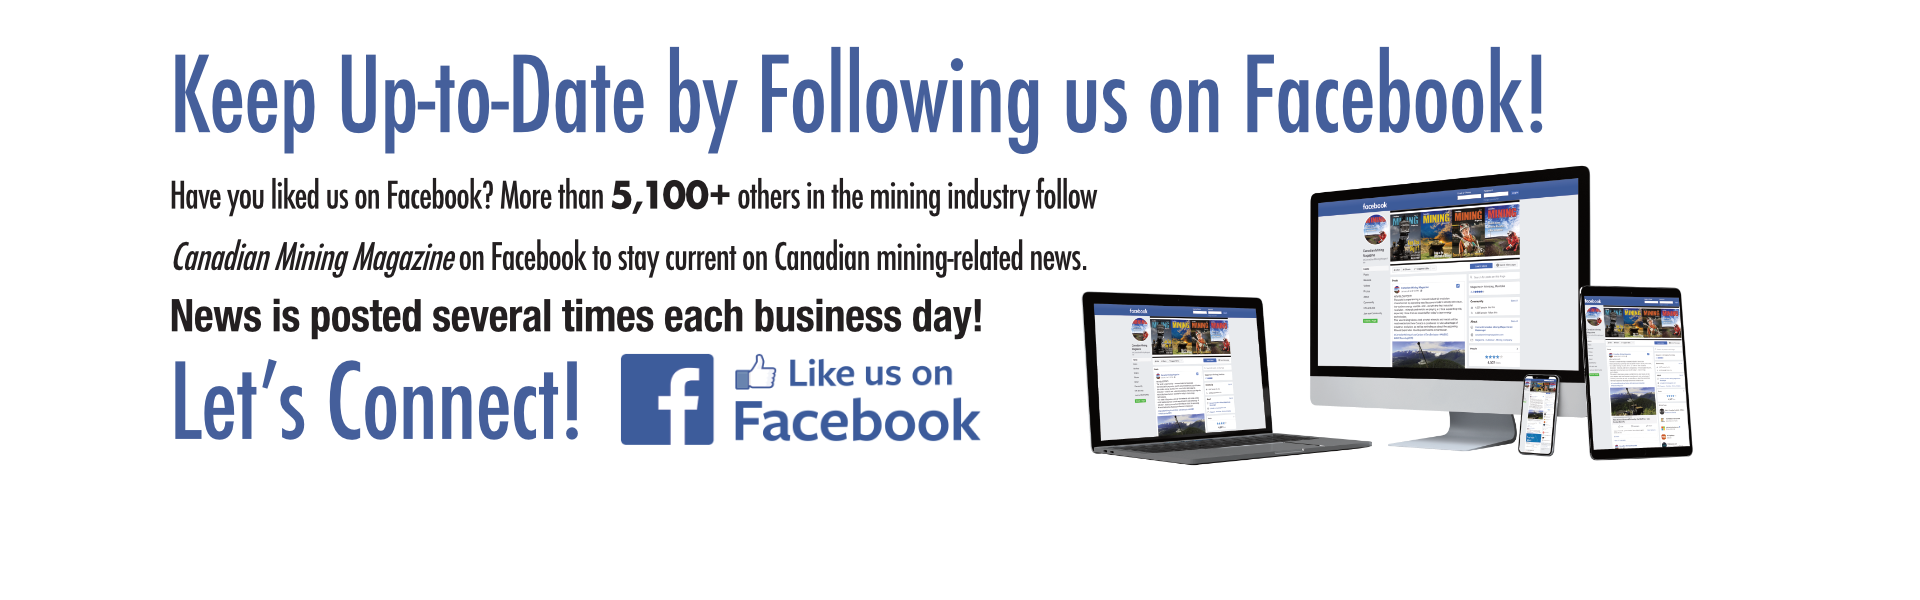 Stay current. Stay connected. Follow us on Facebook!